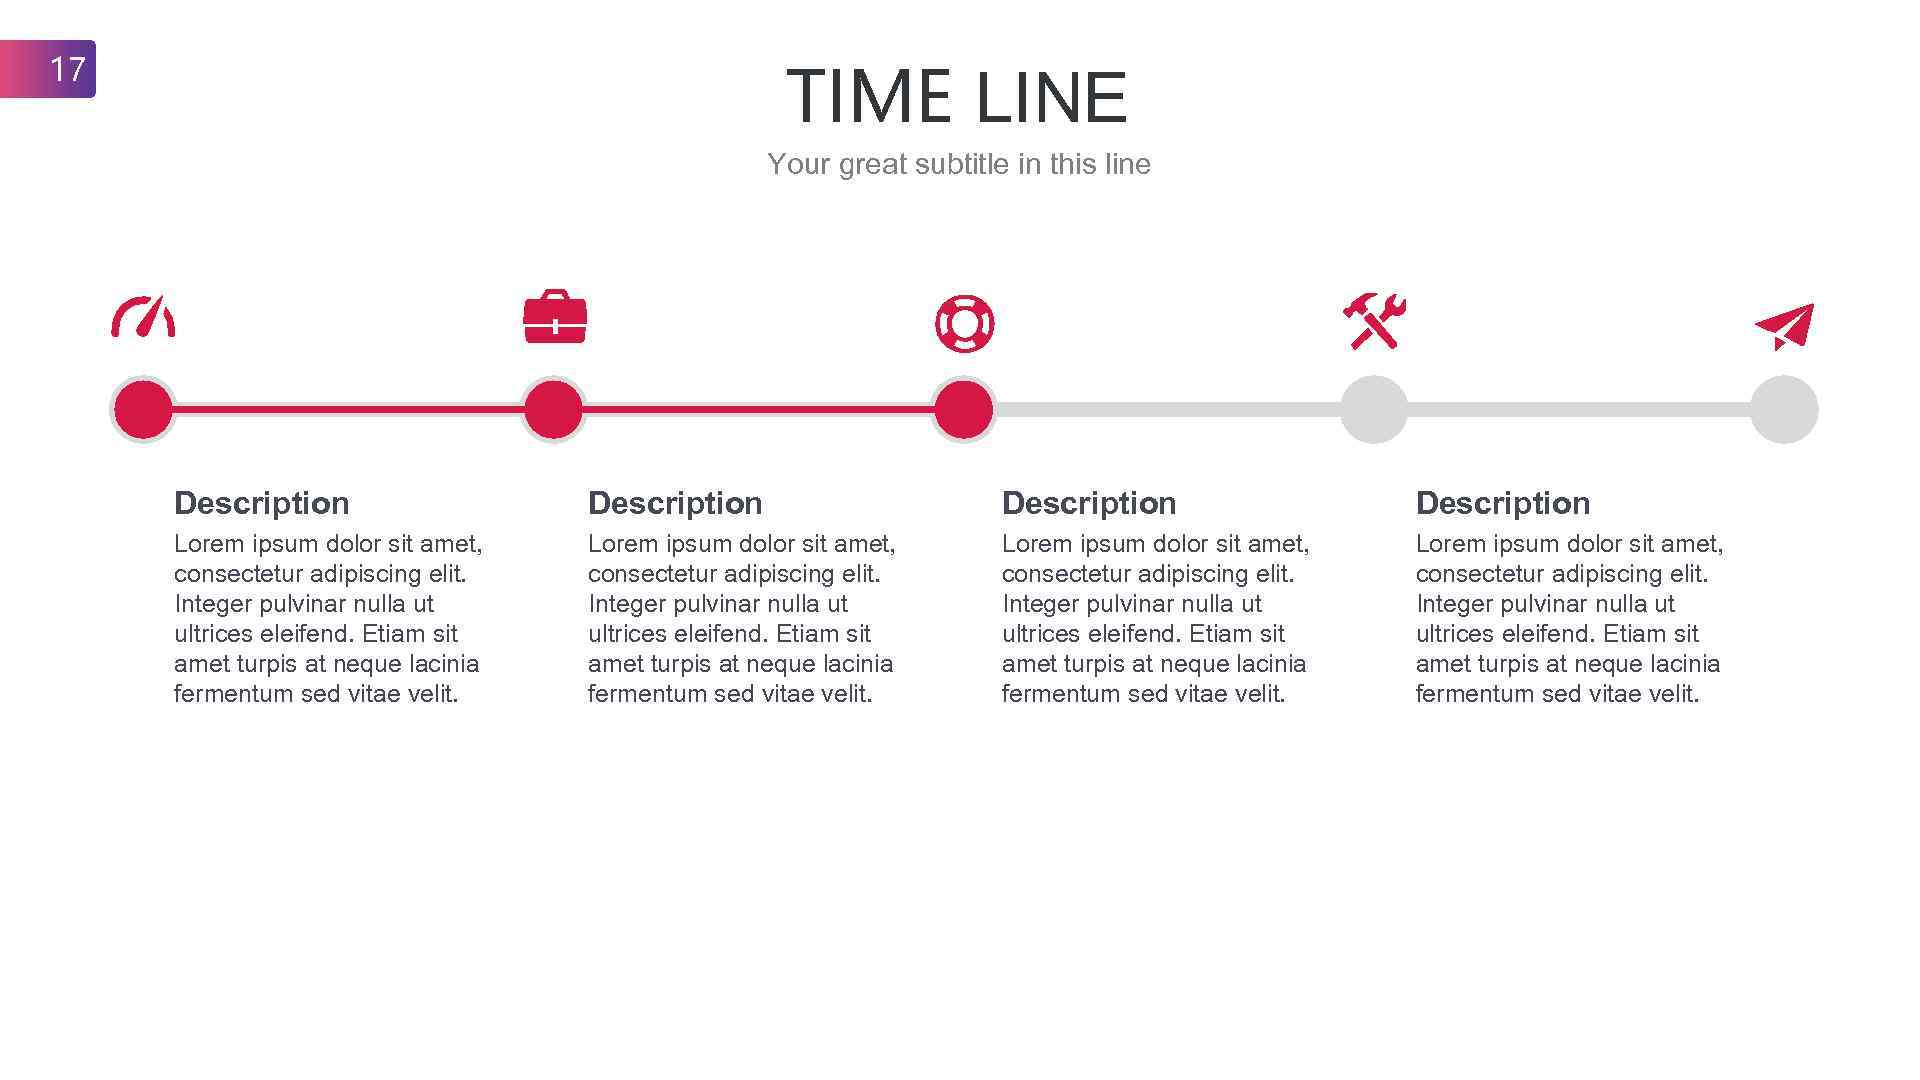 17 TIME LINE Your great subtitle in this line Description Lorem ipsum dolor sit